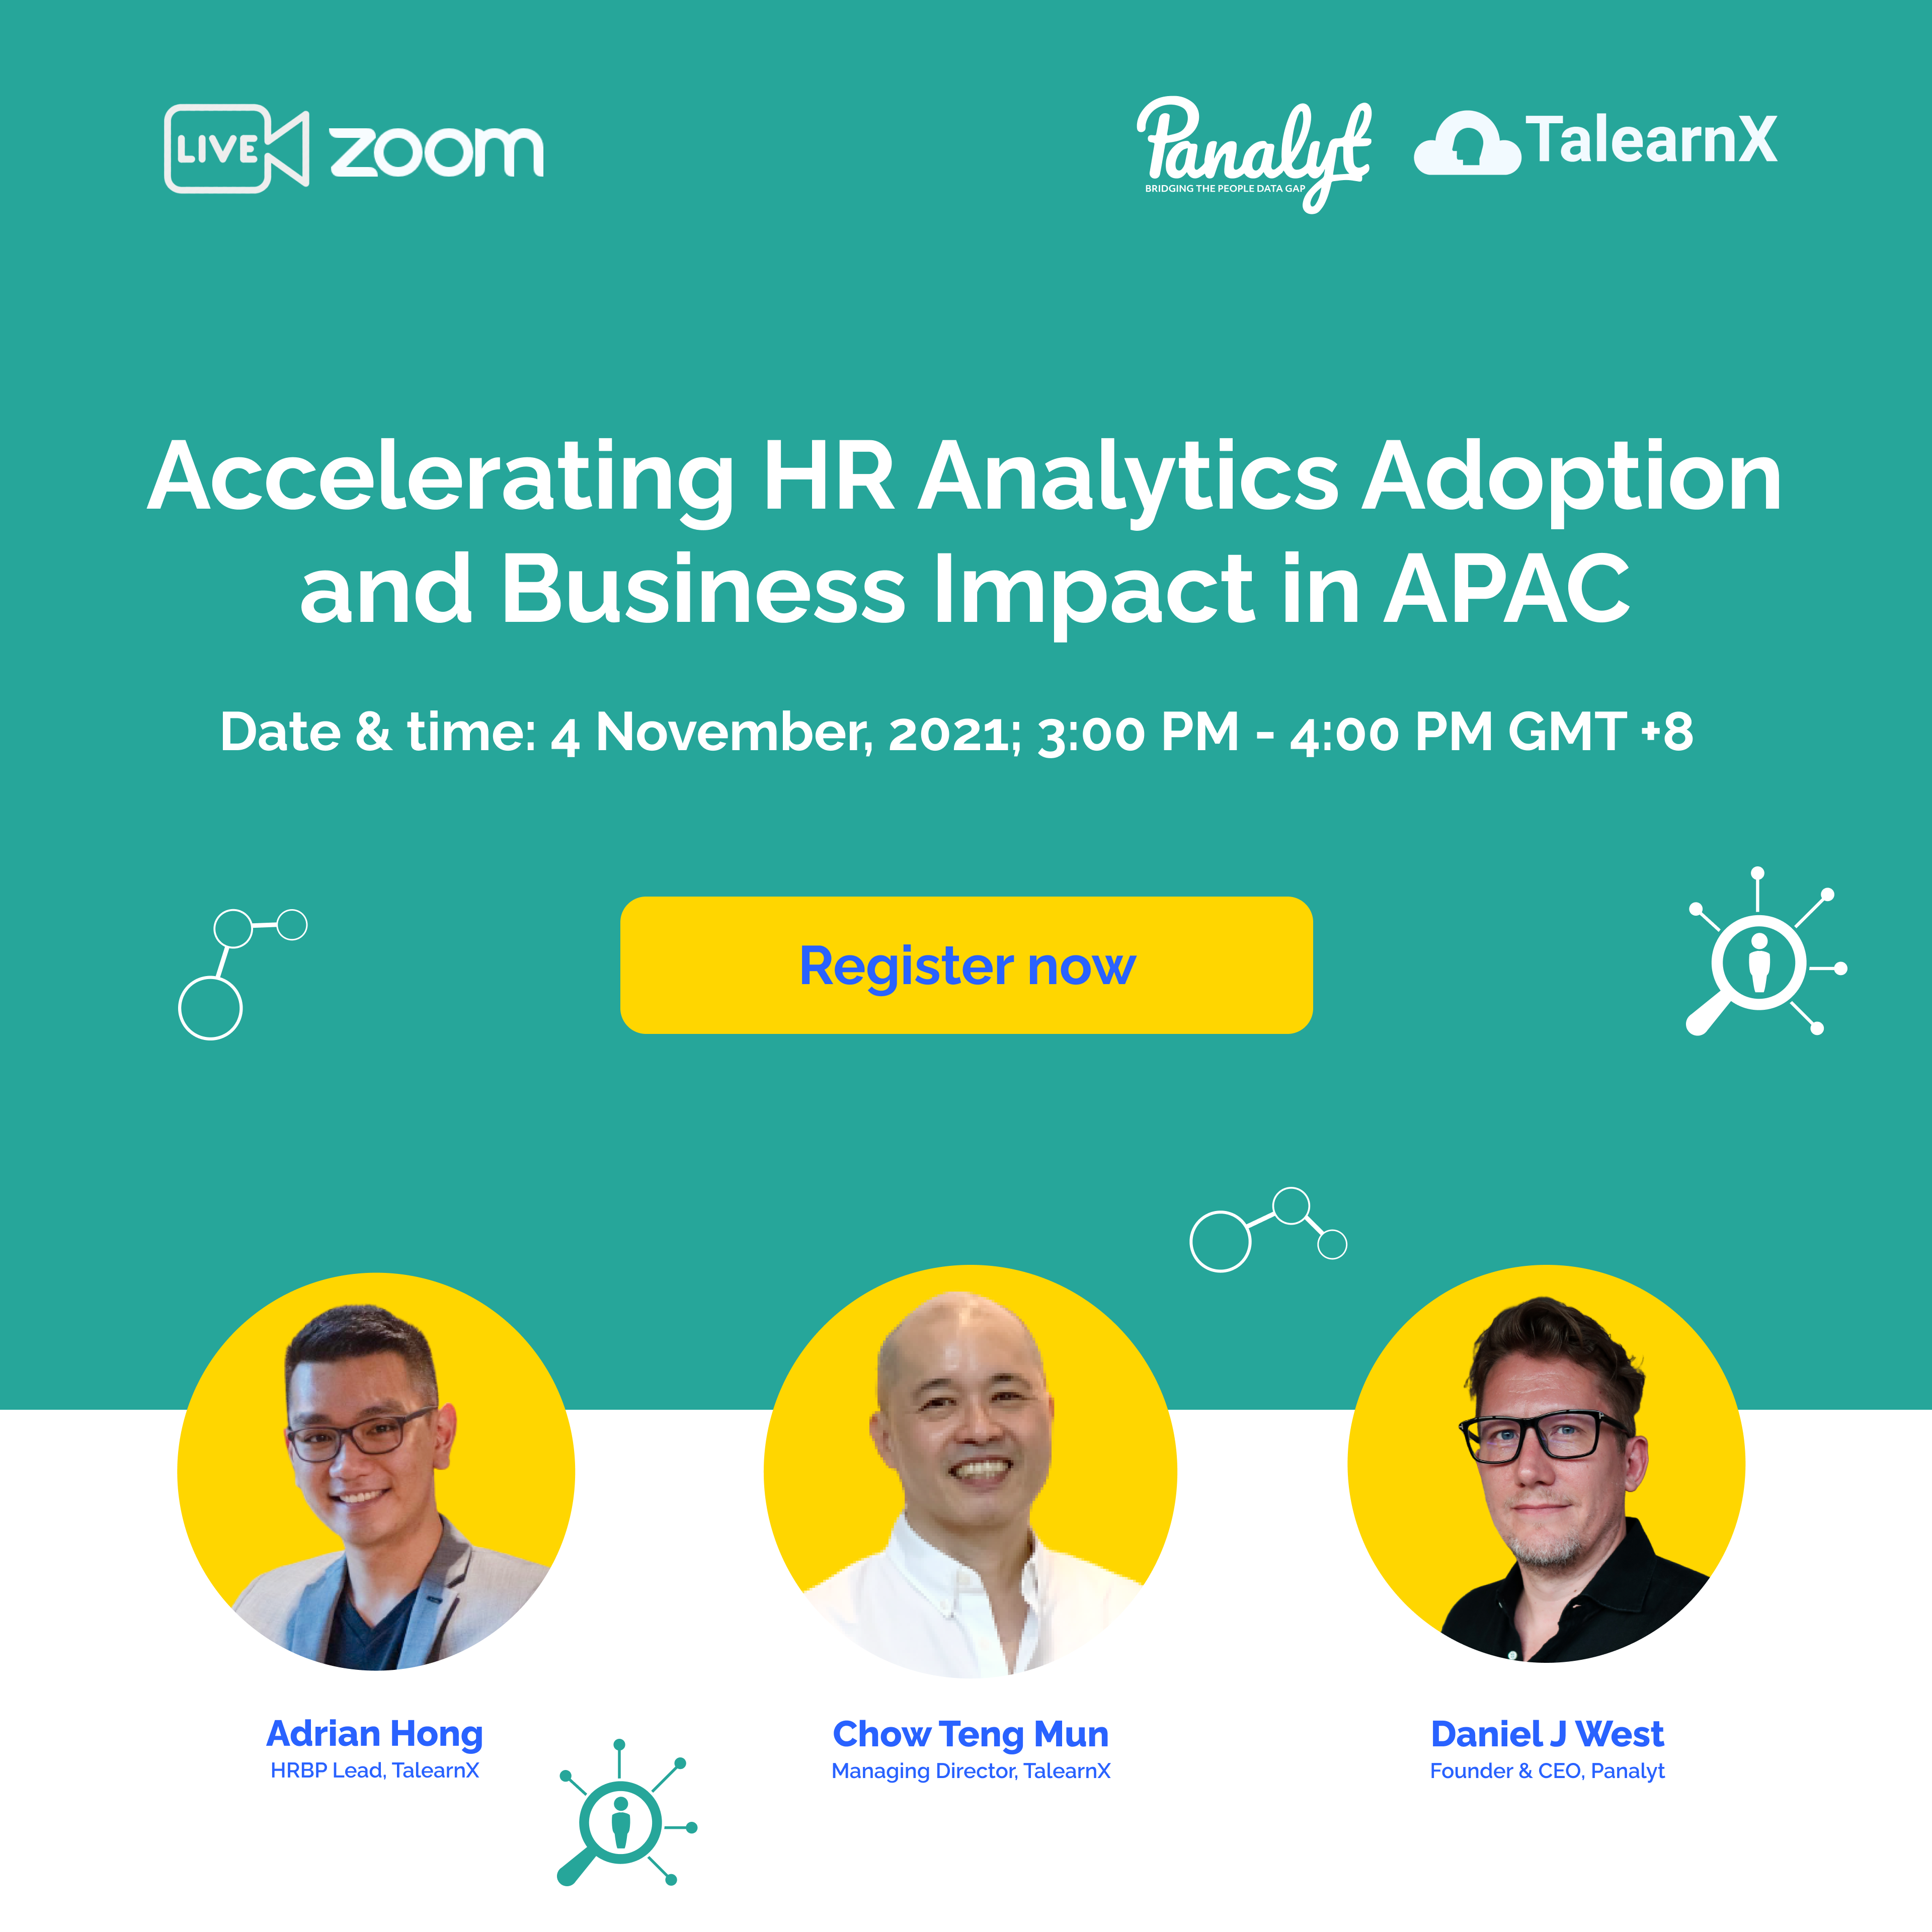 Accelerating HR Analytics Adoption and Business Impact in APAC